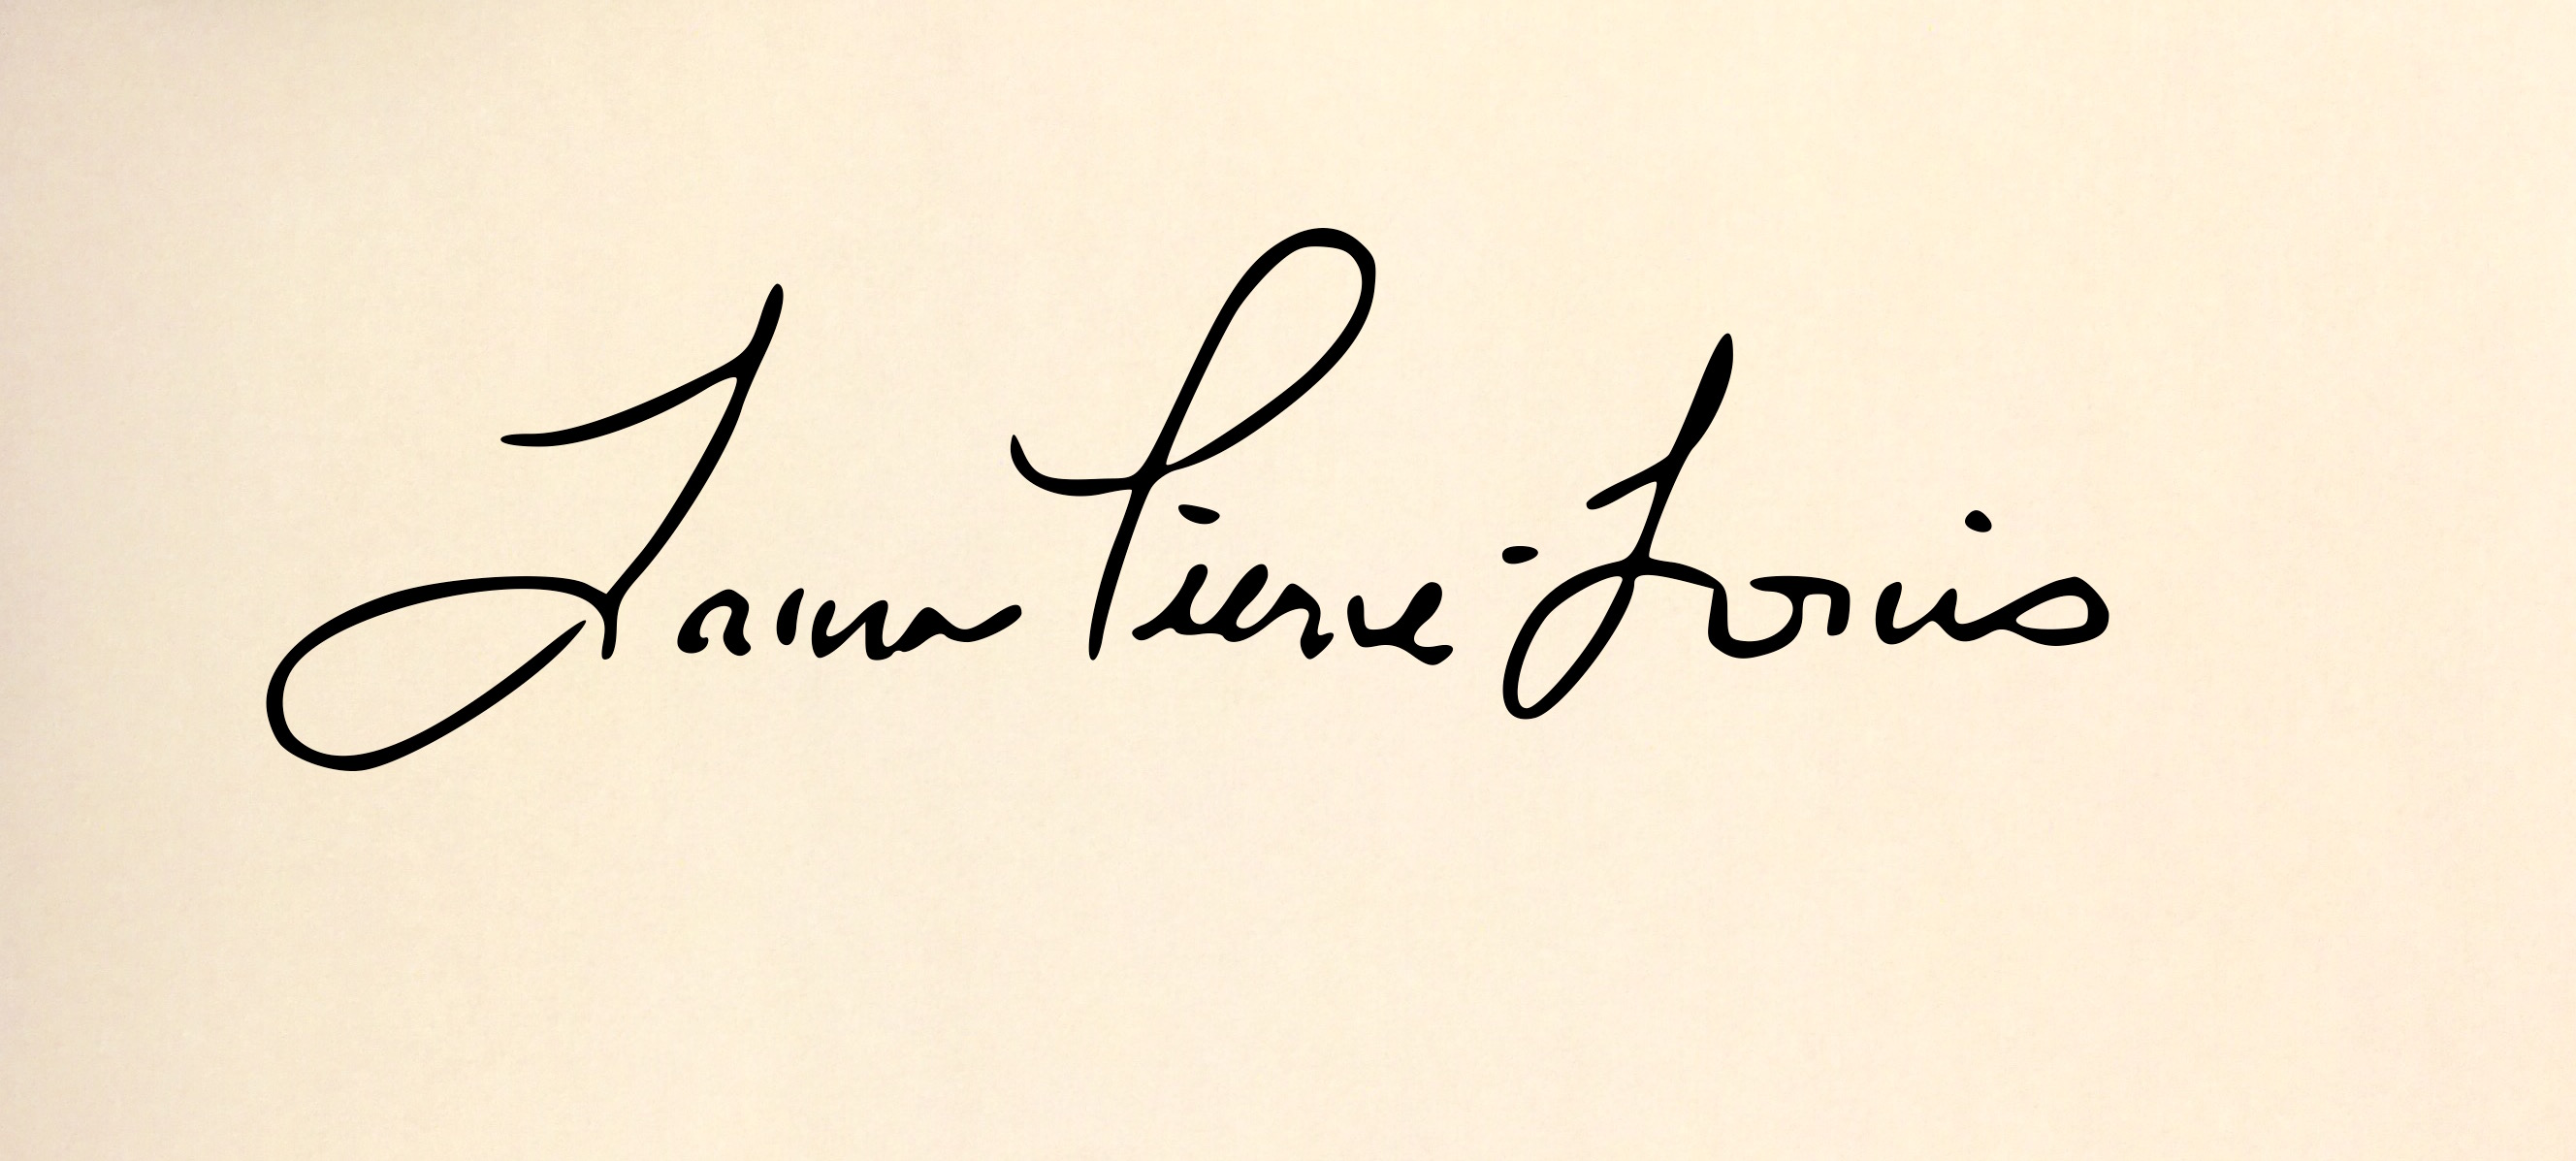 Laura Pierre-Louis Signature